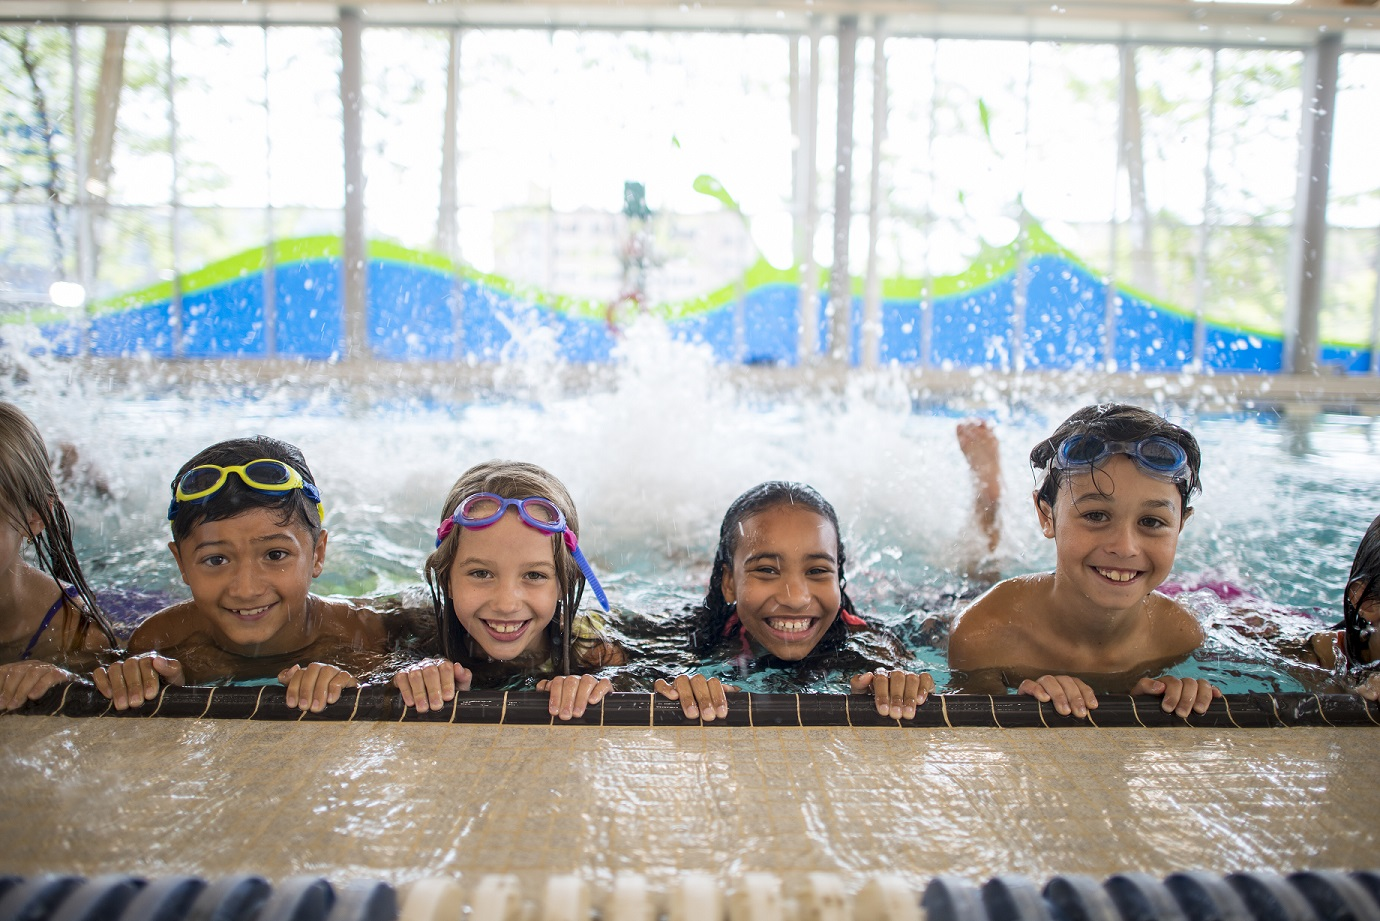 A multi-ethnic group of elementary school children are indoors in a fitness center. They are wearing swimming suits and goggles during swimming class. They are kicking at the side of the pool to practice.